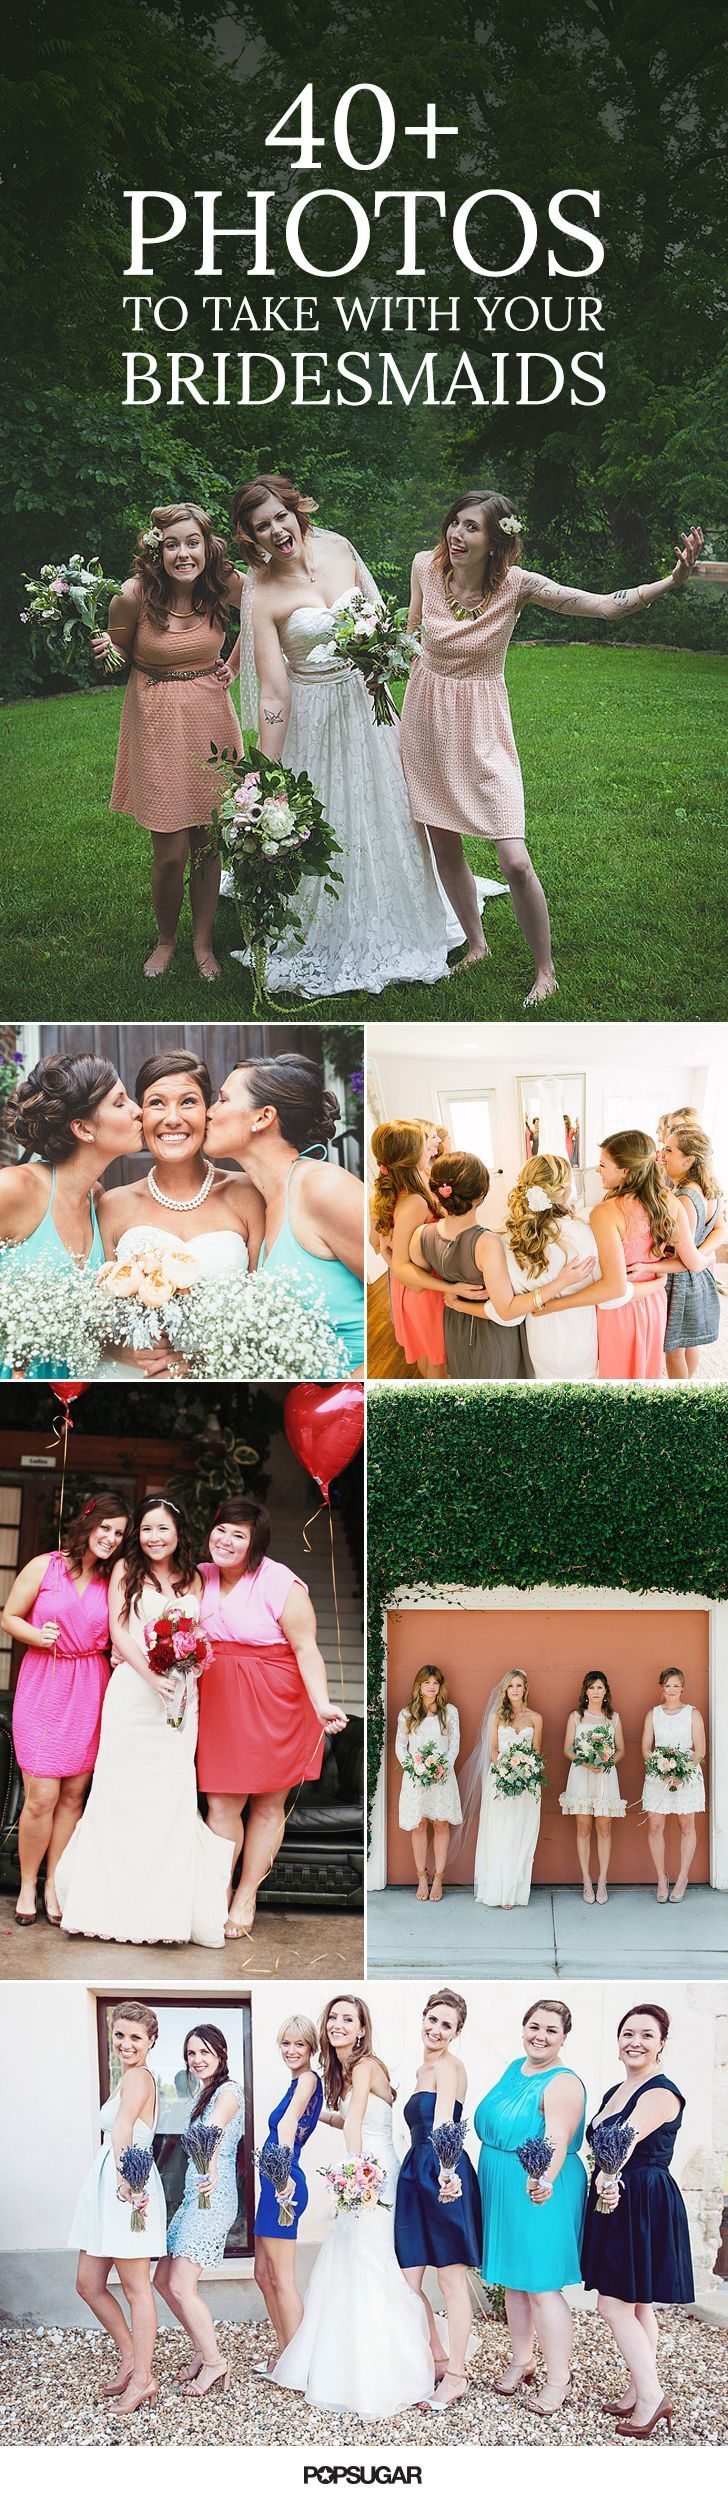 40+ Adorable Photos You Need to Take With Your Bridesmaids